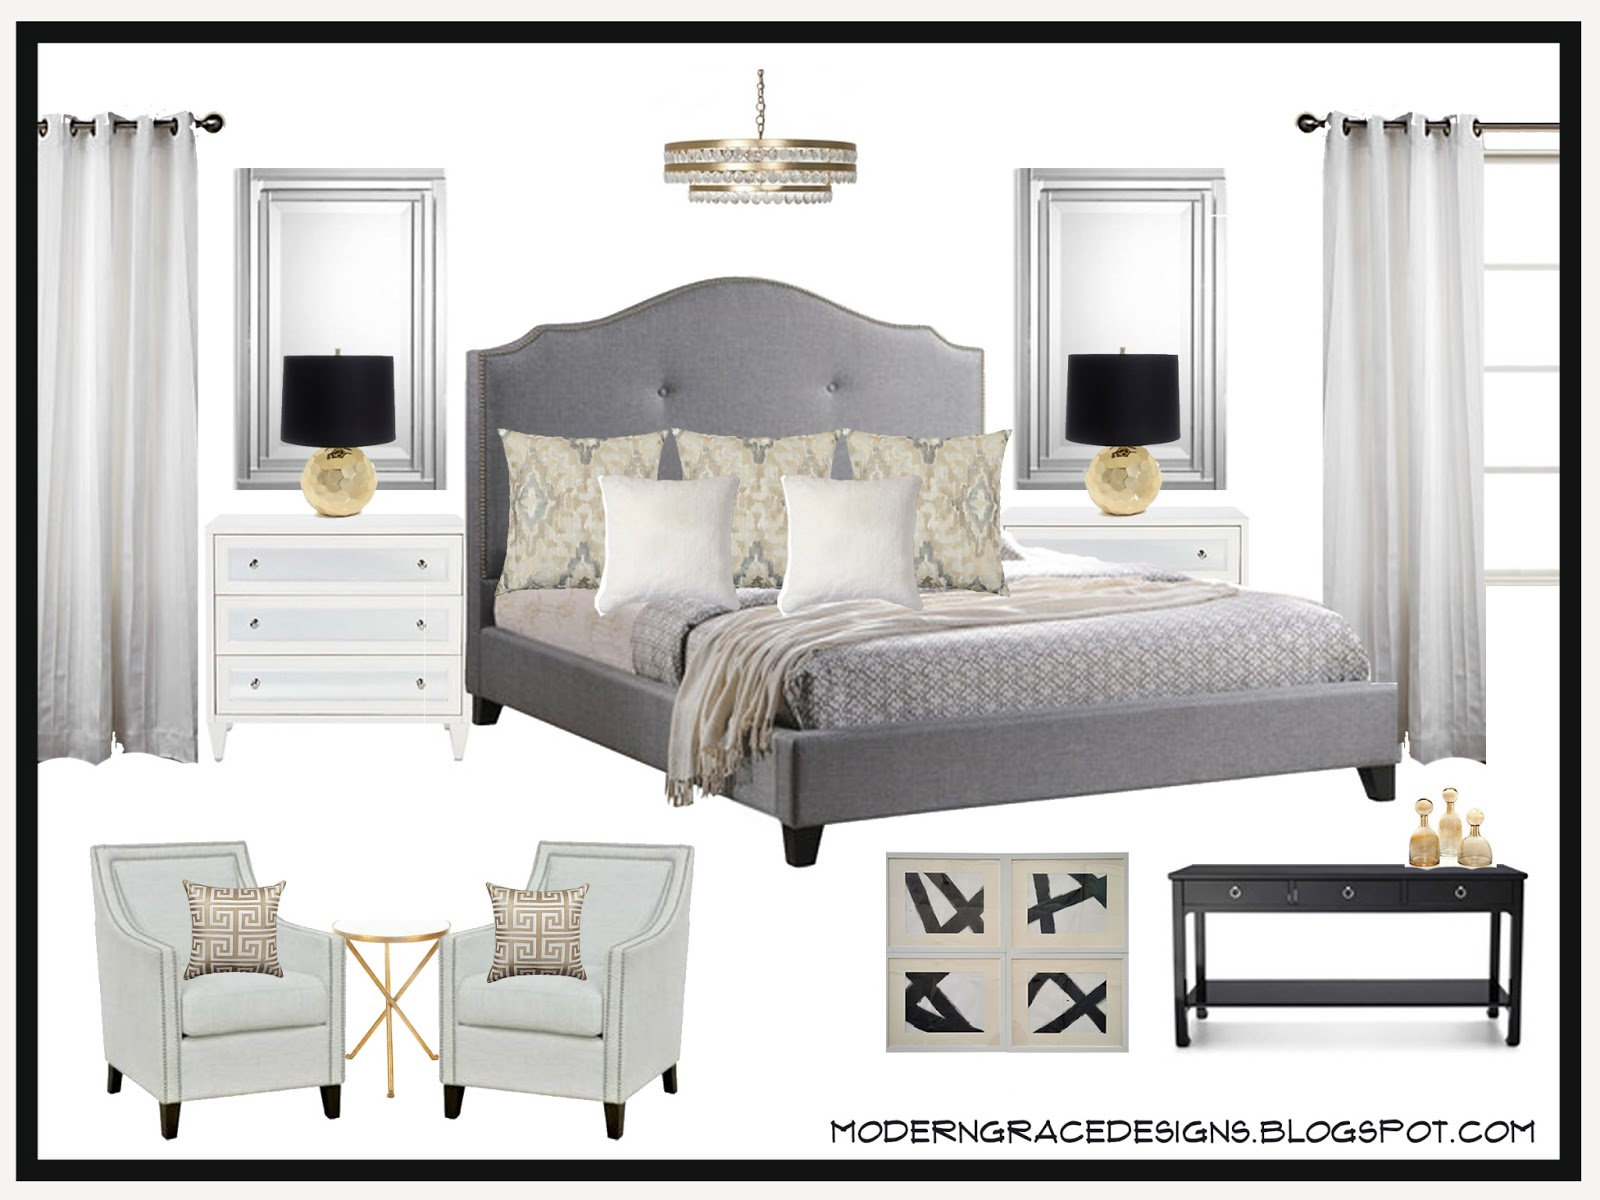 modern grace} designs: {design board:: elegant master bedroom